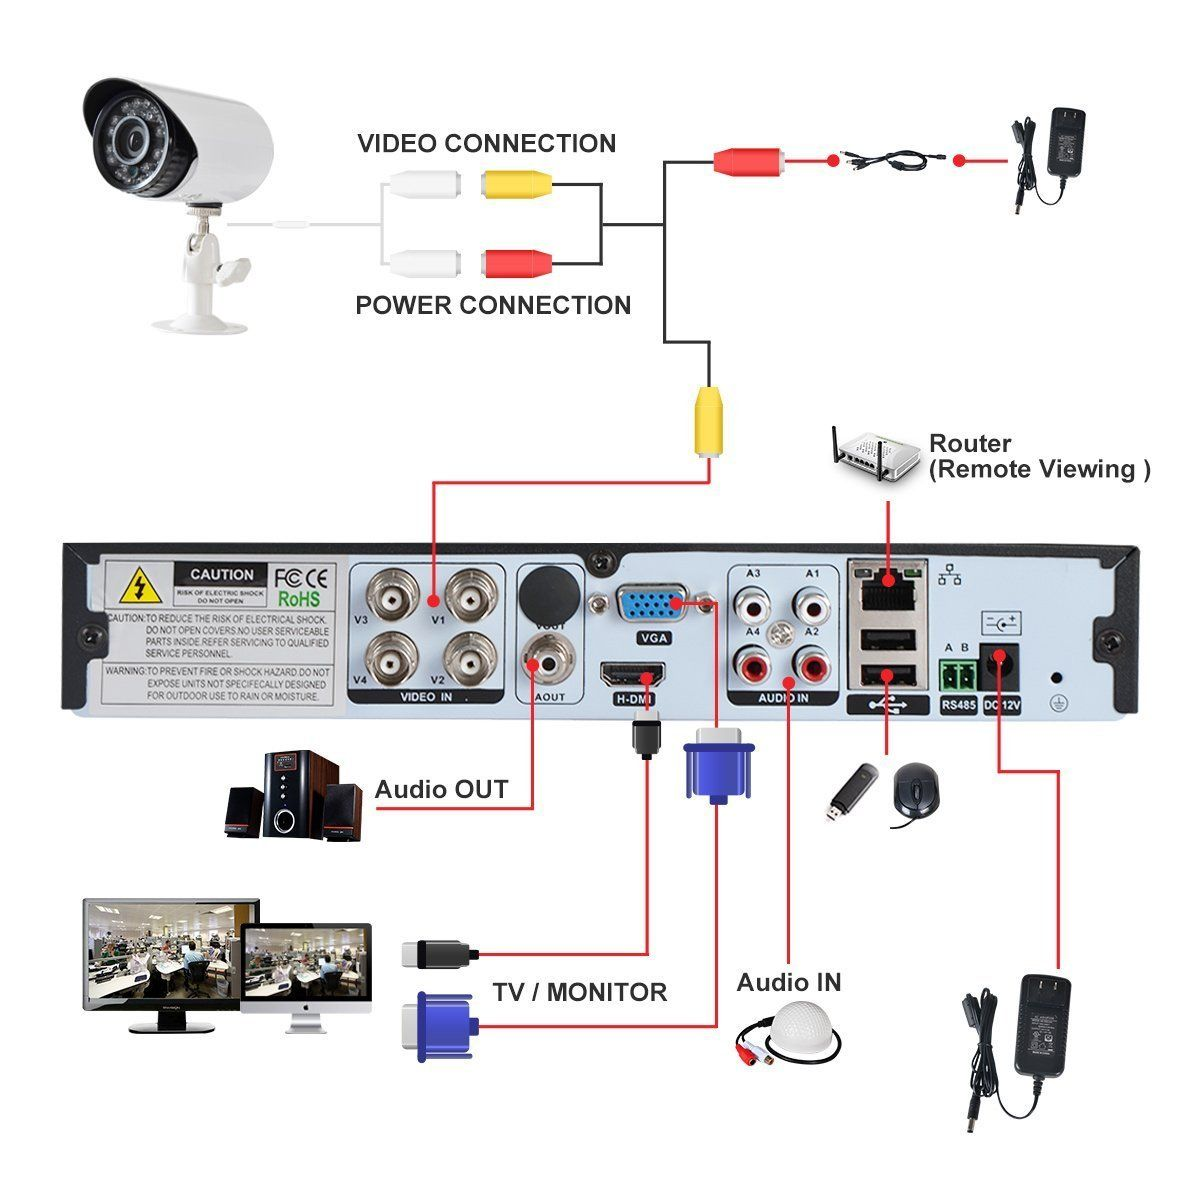 amazon.com : jooan tc-404ahd-4a 4ch ahd 720p cctv cameras ... for home security camera system wiring diagram #10